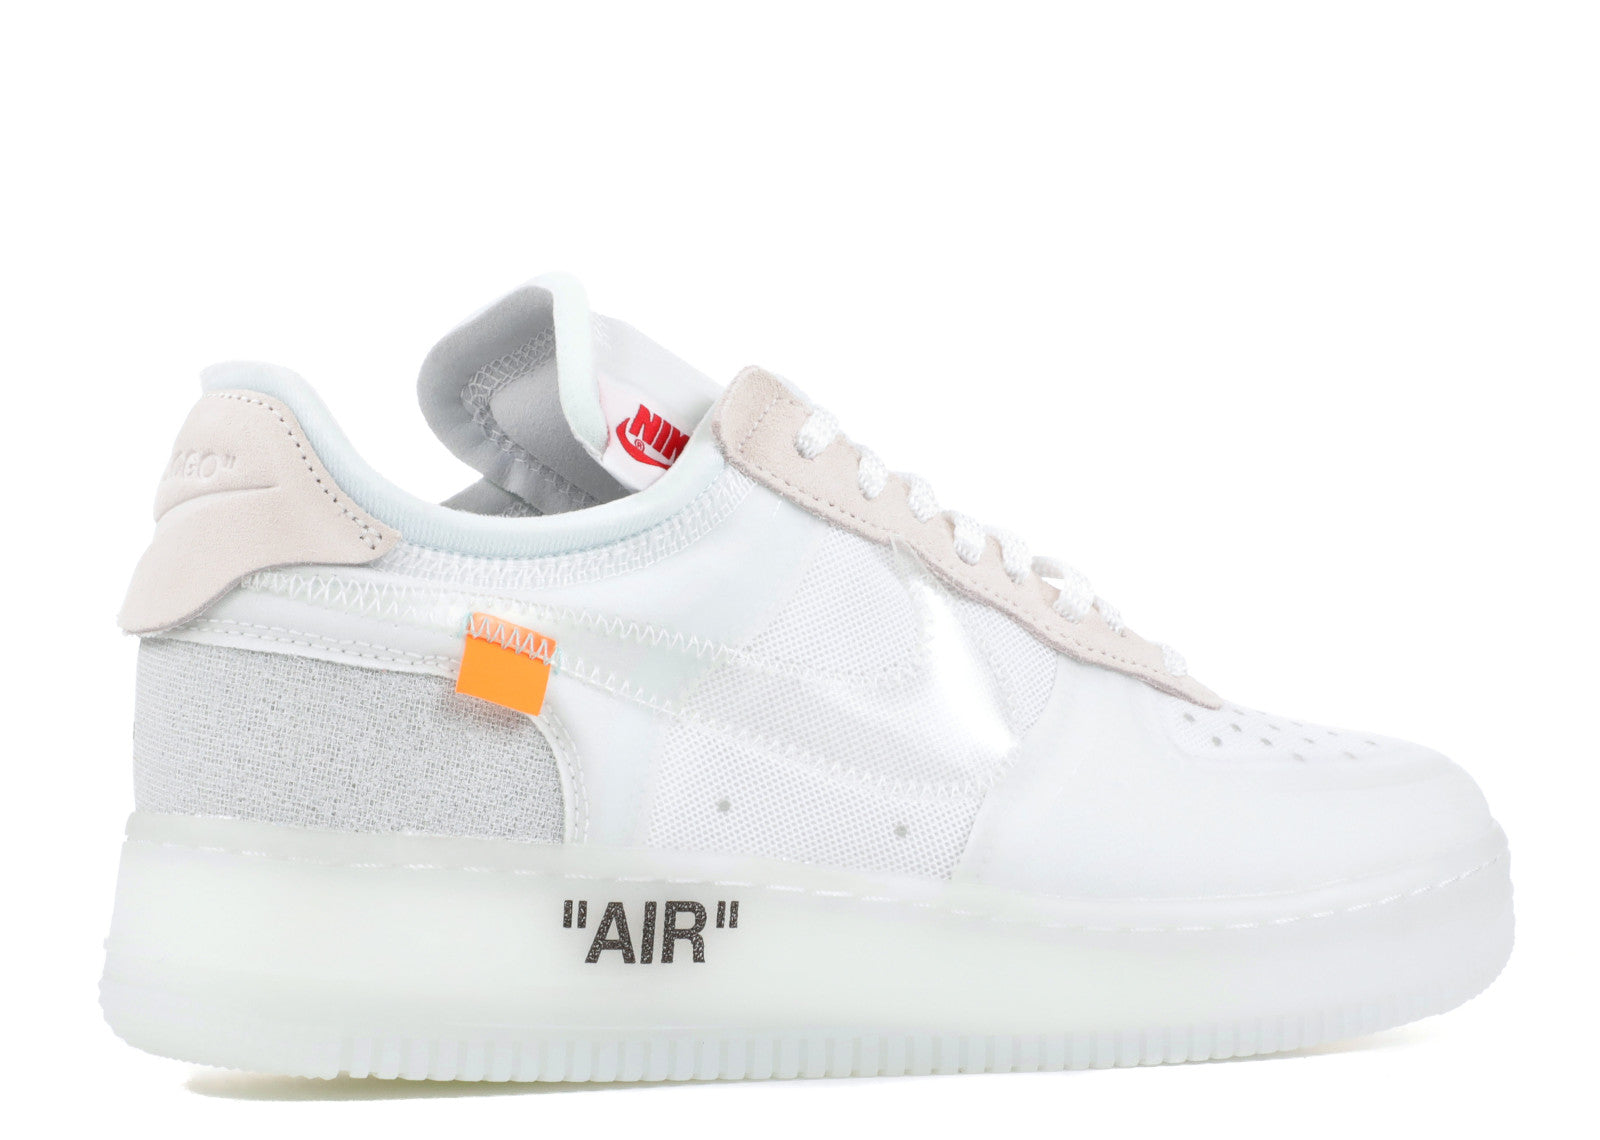 3925ccbae4 Off-White X Nike Air Force 1 Low 'The Ten' – CREP LDN